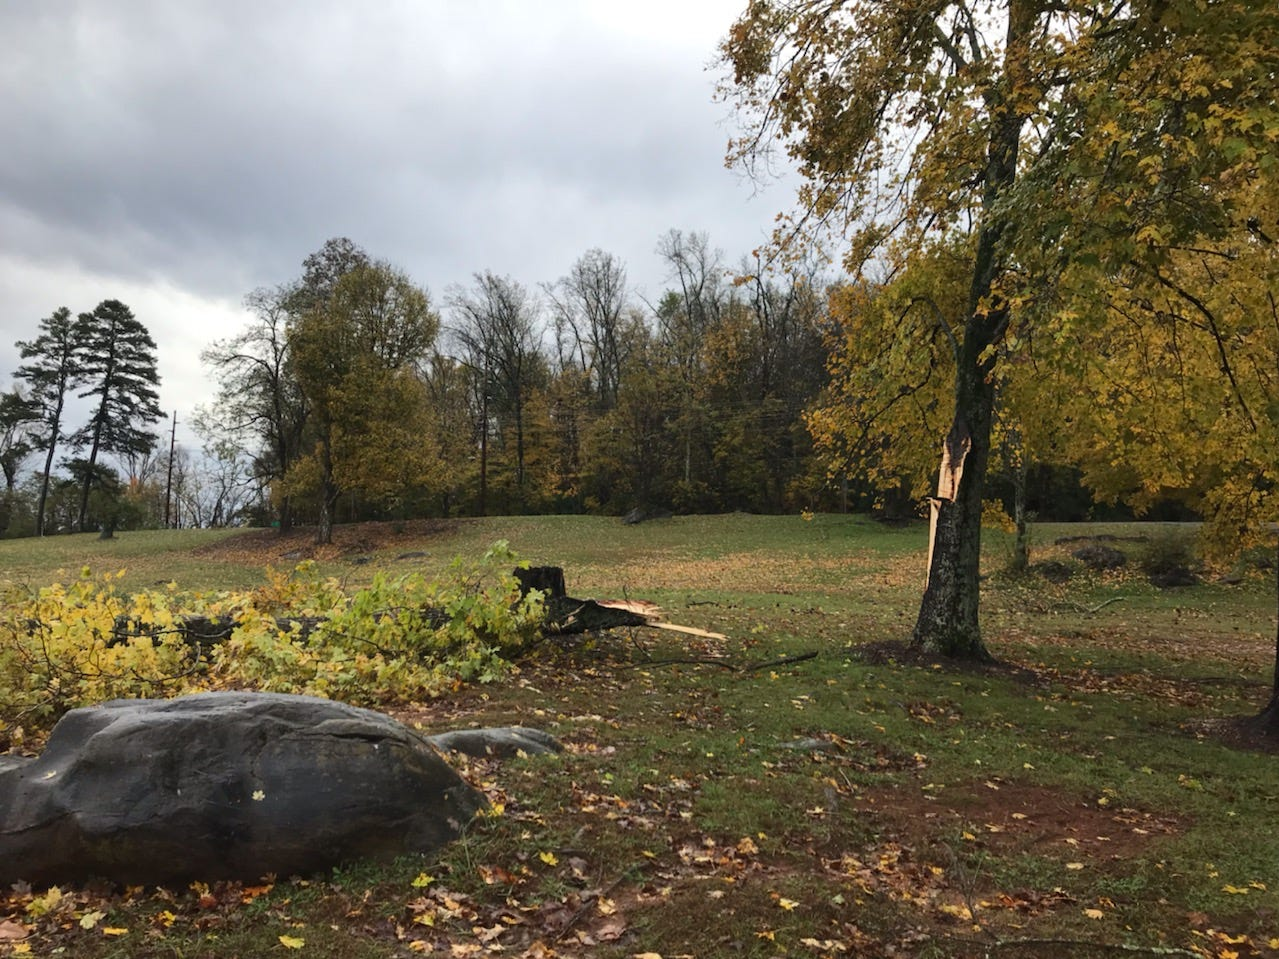 Storm damage to a tree at Concord Park Rocky Point in Farragut on Tuesday, Nov. 6, 2018.